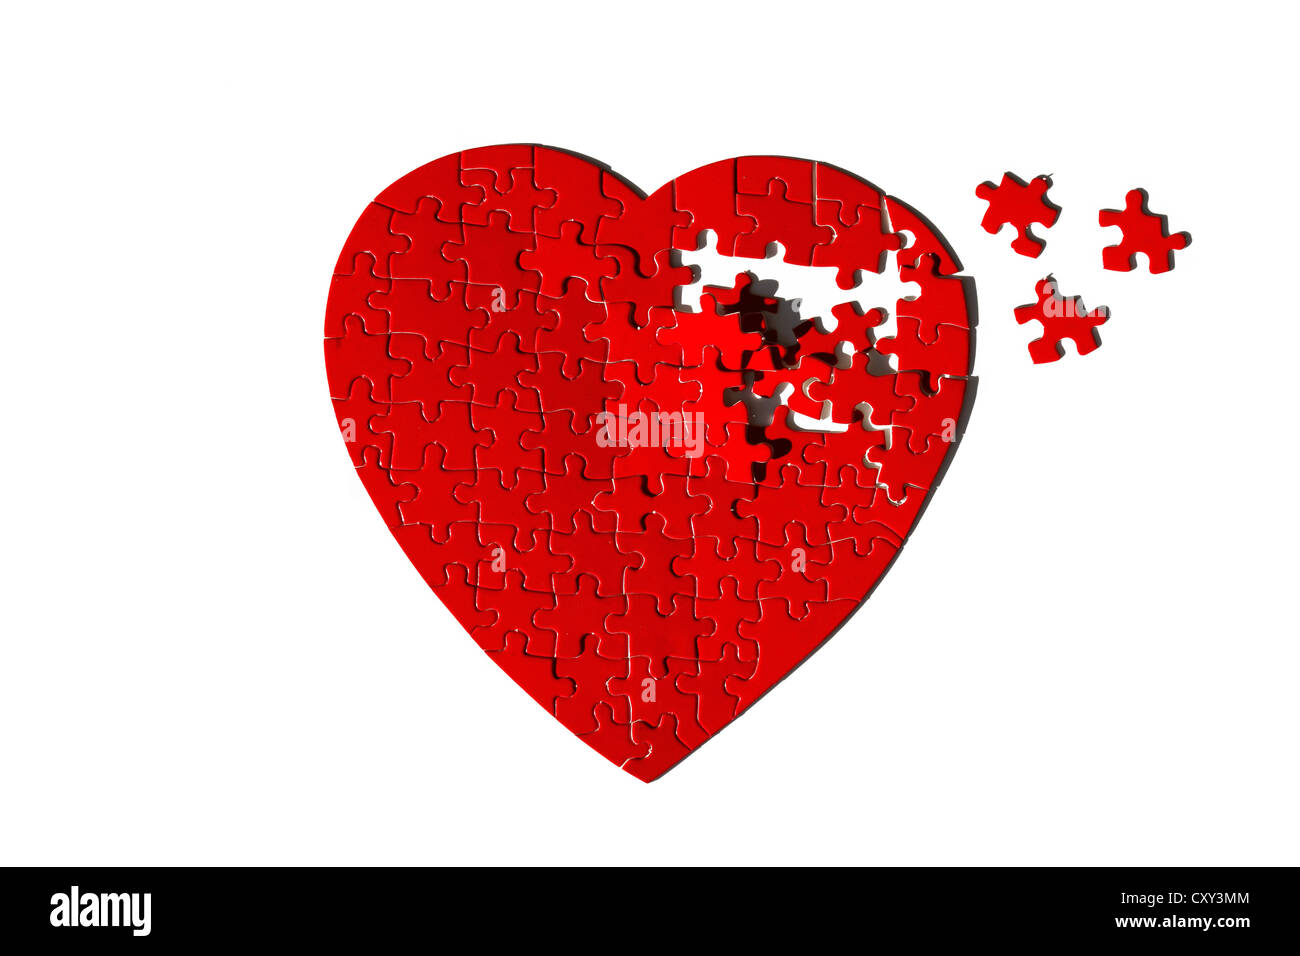 Red heart-shaped jigsaw puzzle, incomplete - Stock Image